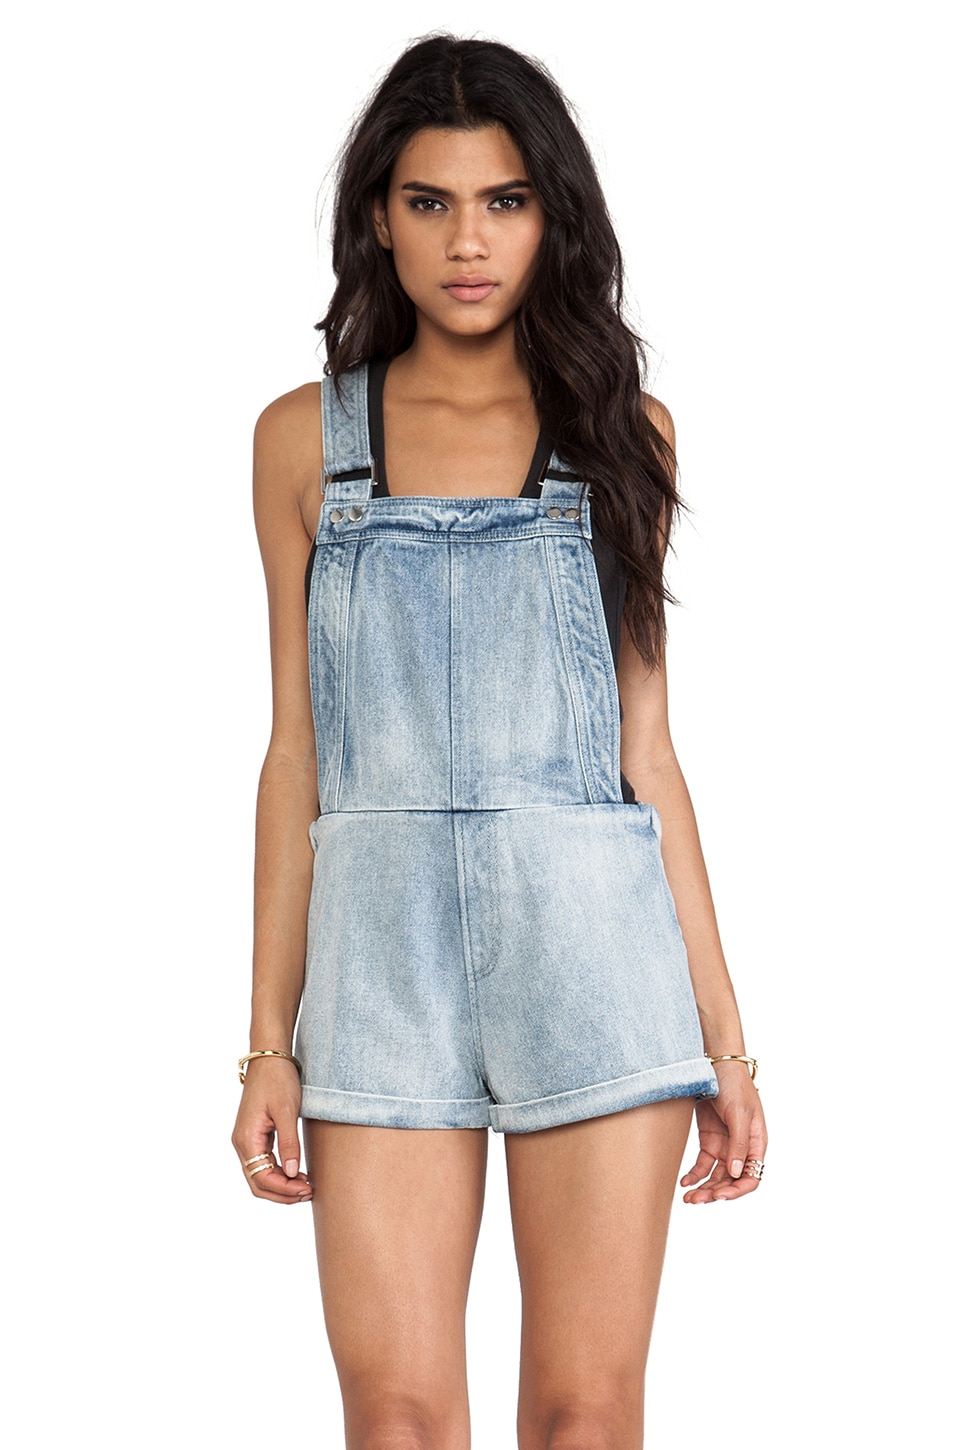 Finders Keepers Pawn Shop Blues Playsuit in Denim